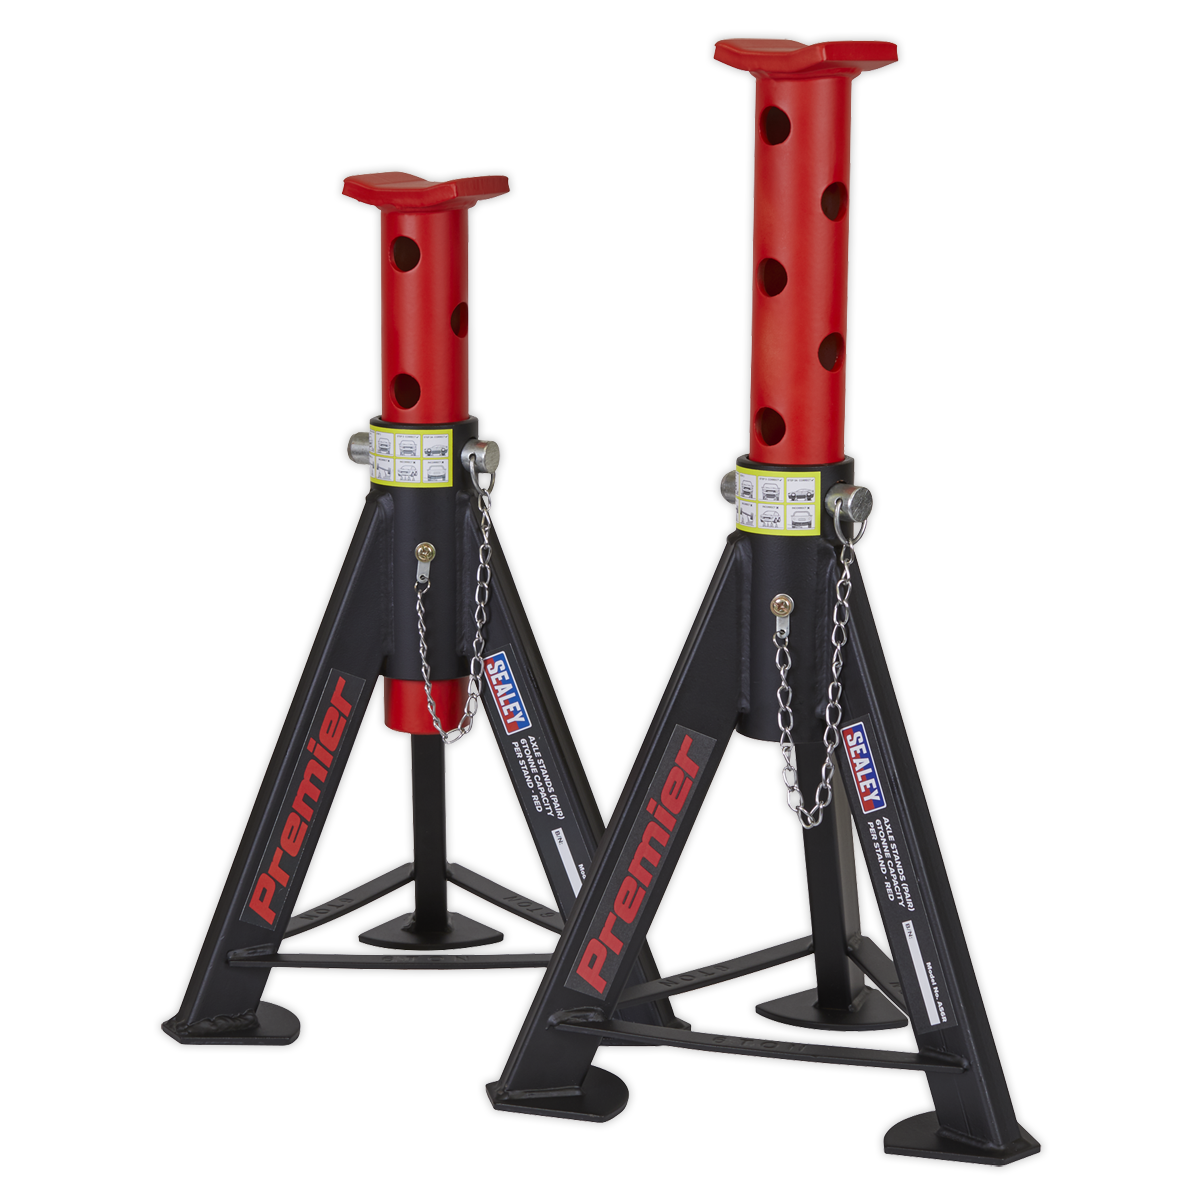 - Axle Stands (Pair) 6tonne Capacity per Stand - rot SEALEY AS6R by Sealey